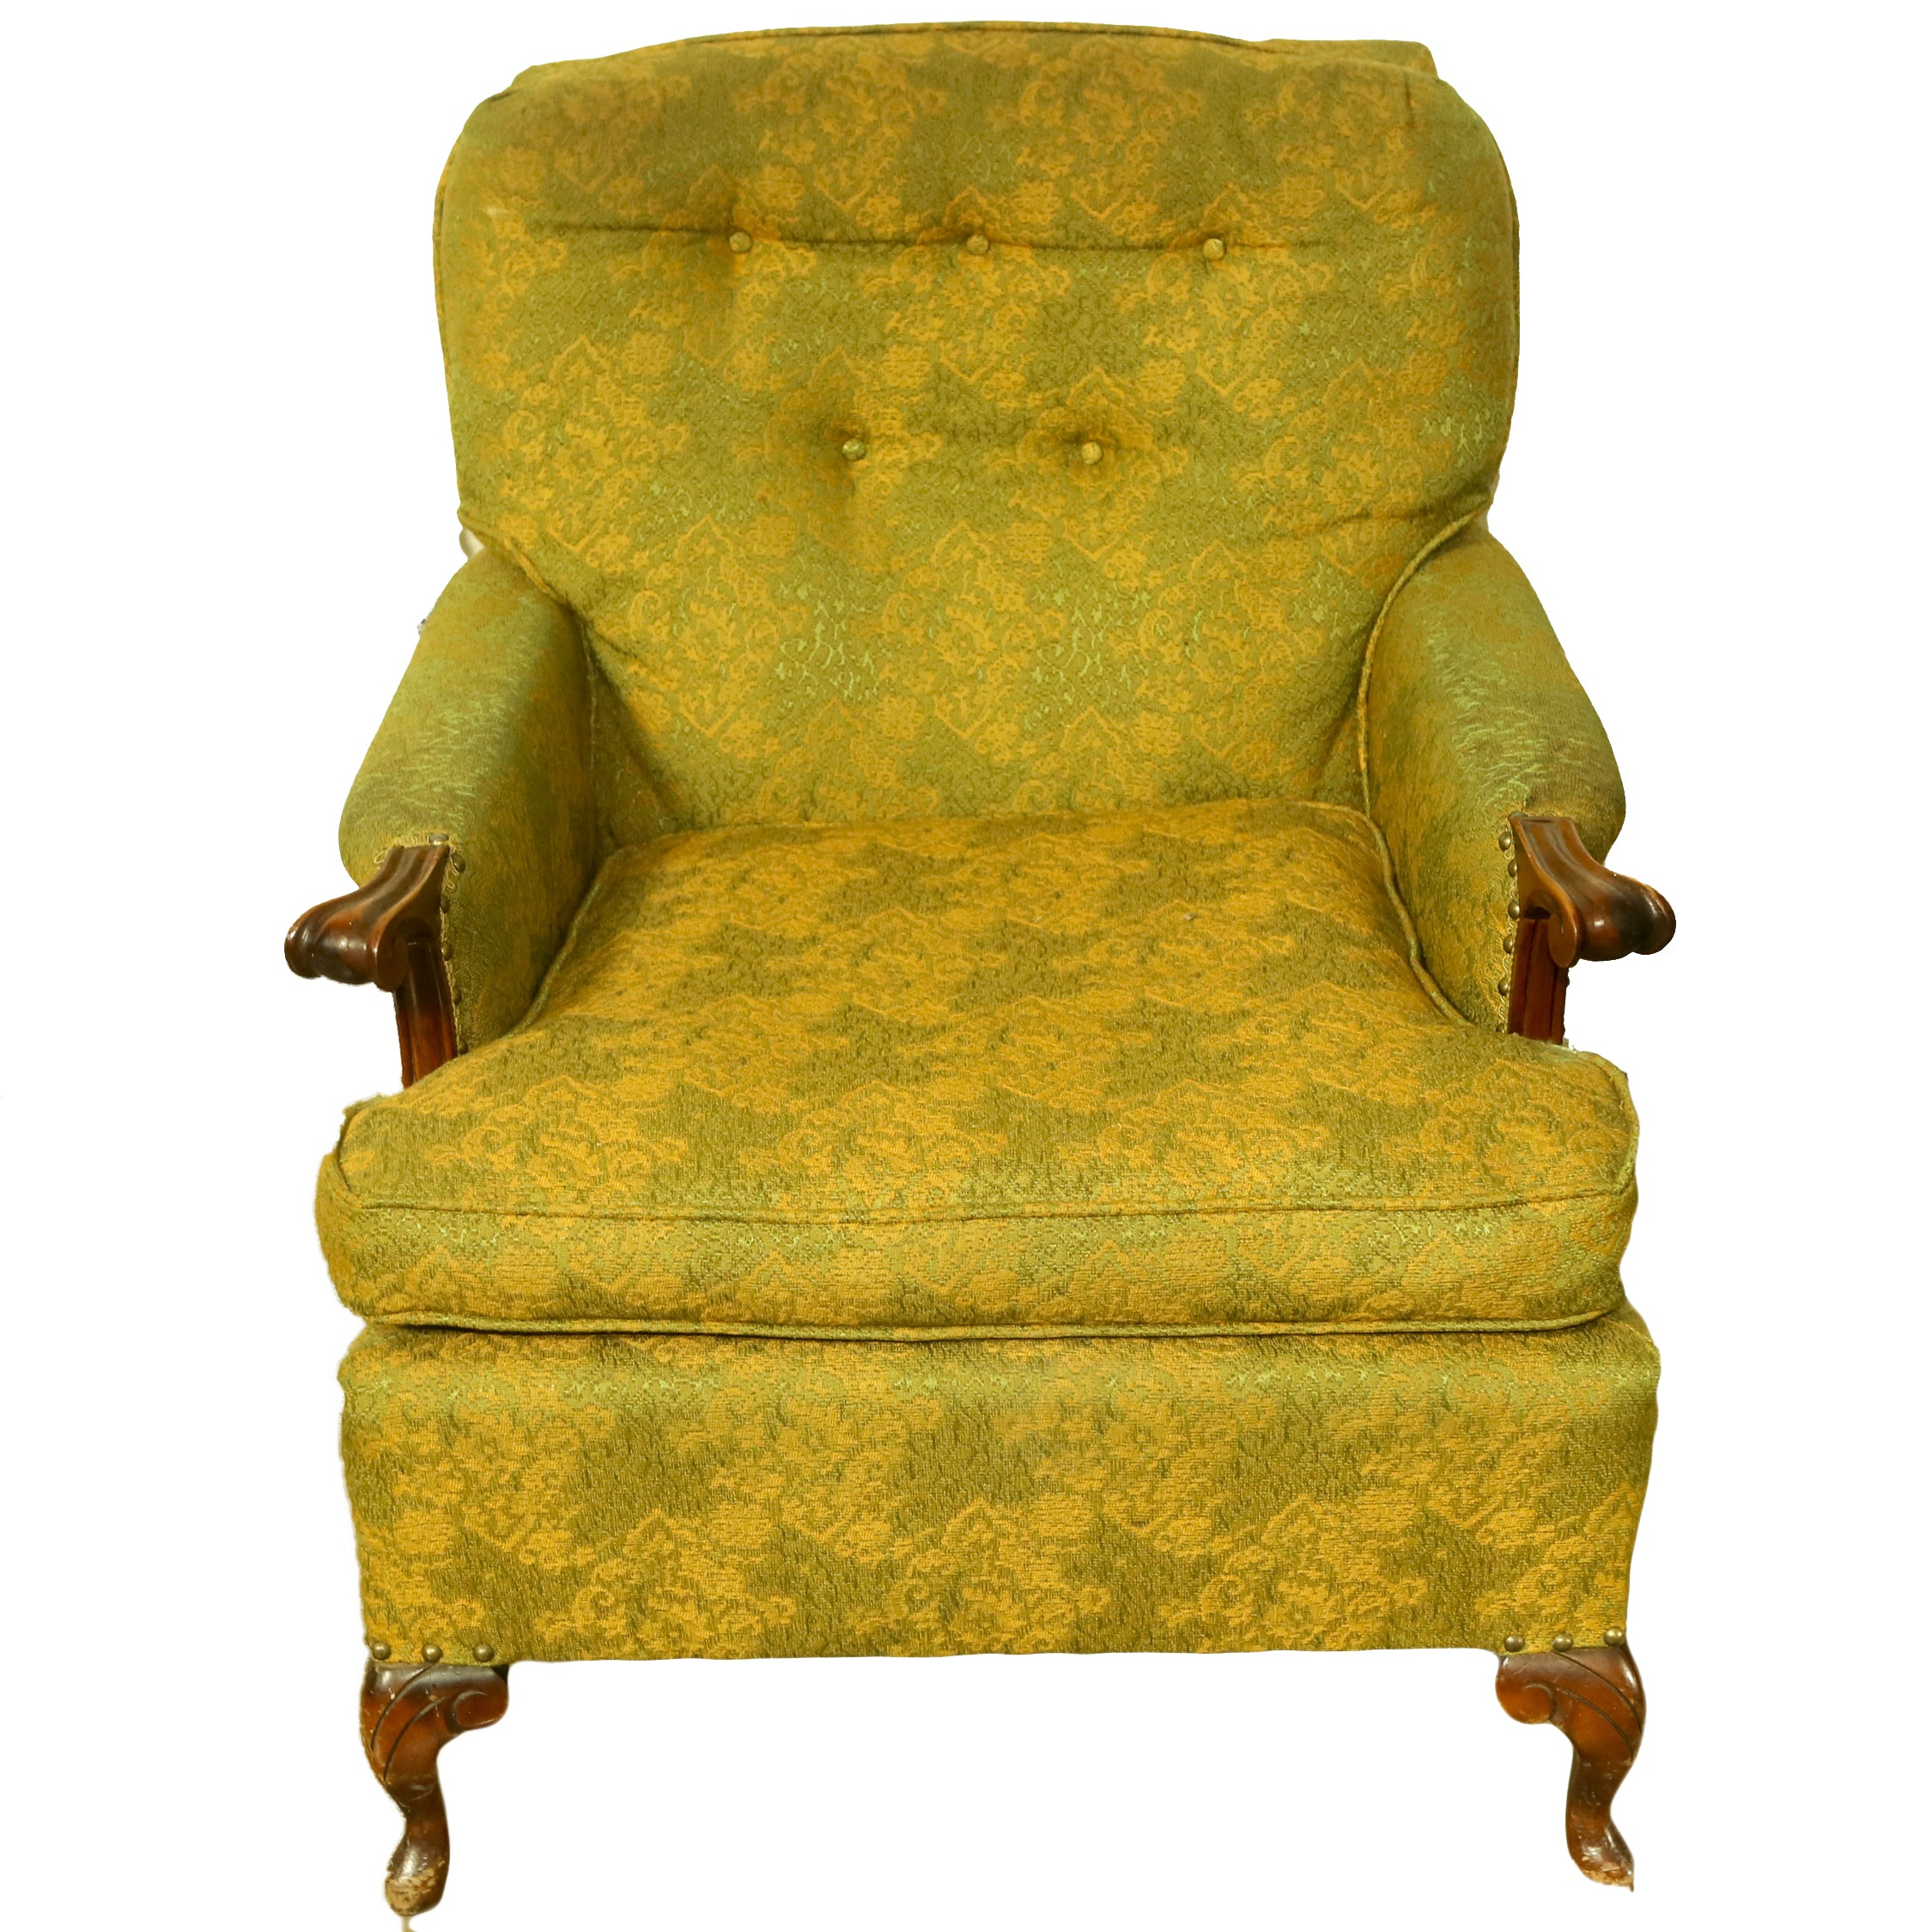 Vintage Queen Anne Style Upholstered Armchair